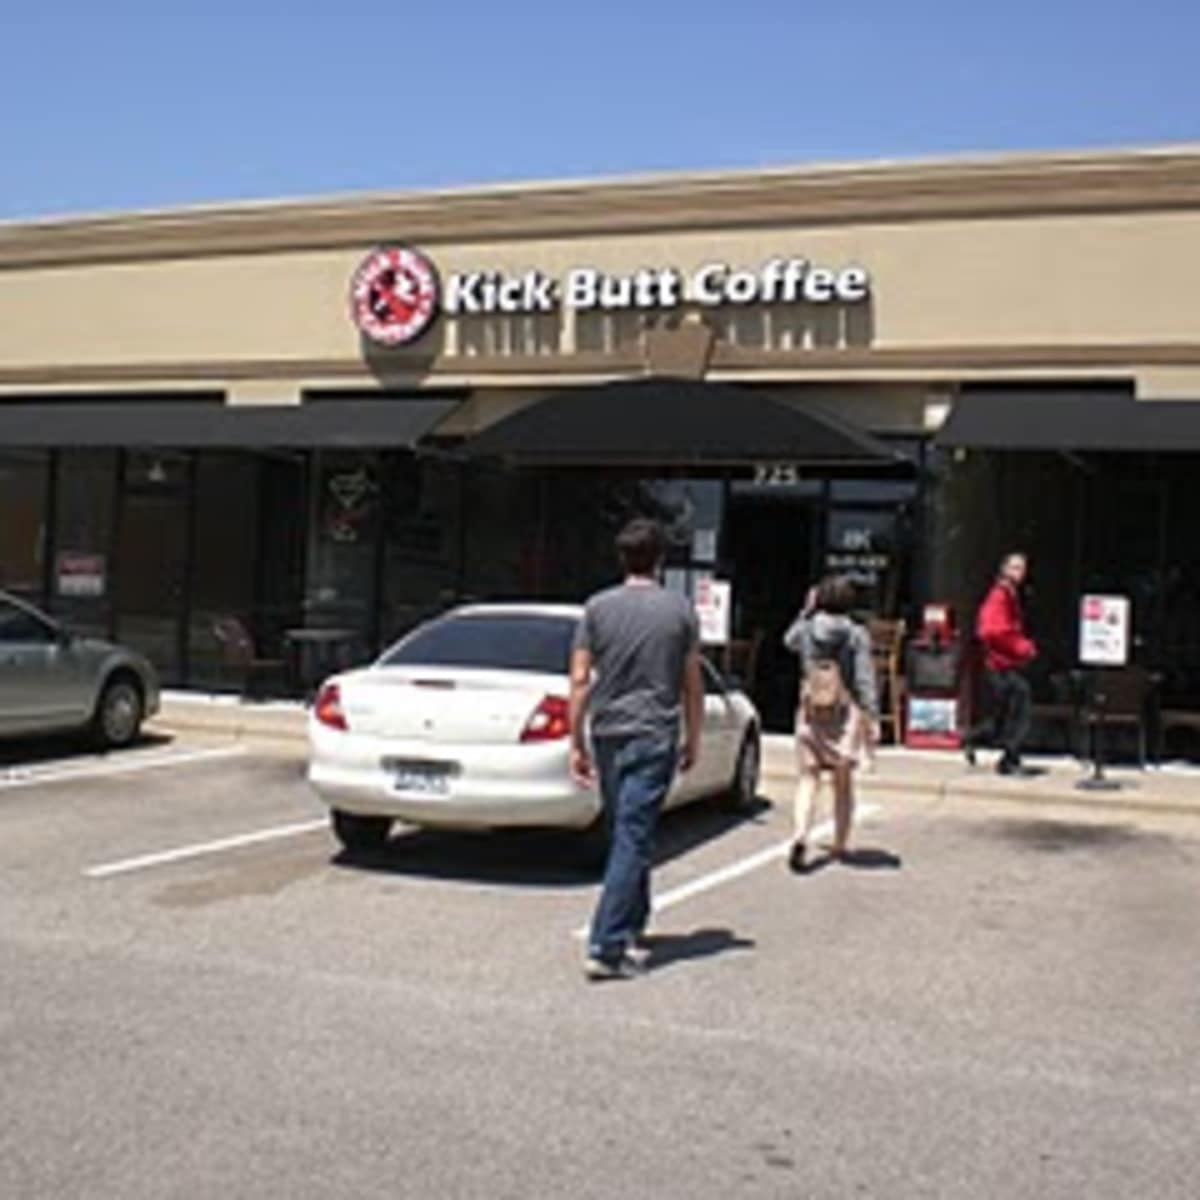 Austin_photo: places_drinks_kick_butt_coffee_exterior